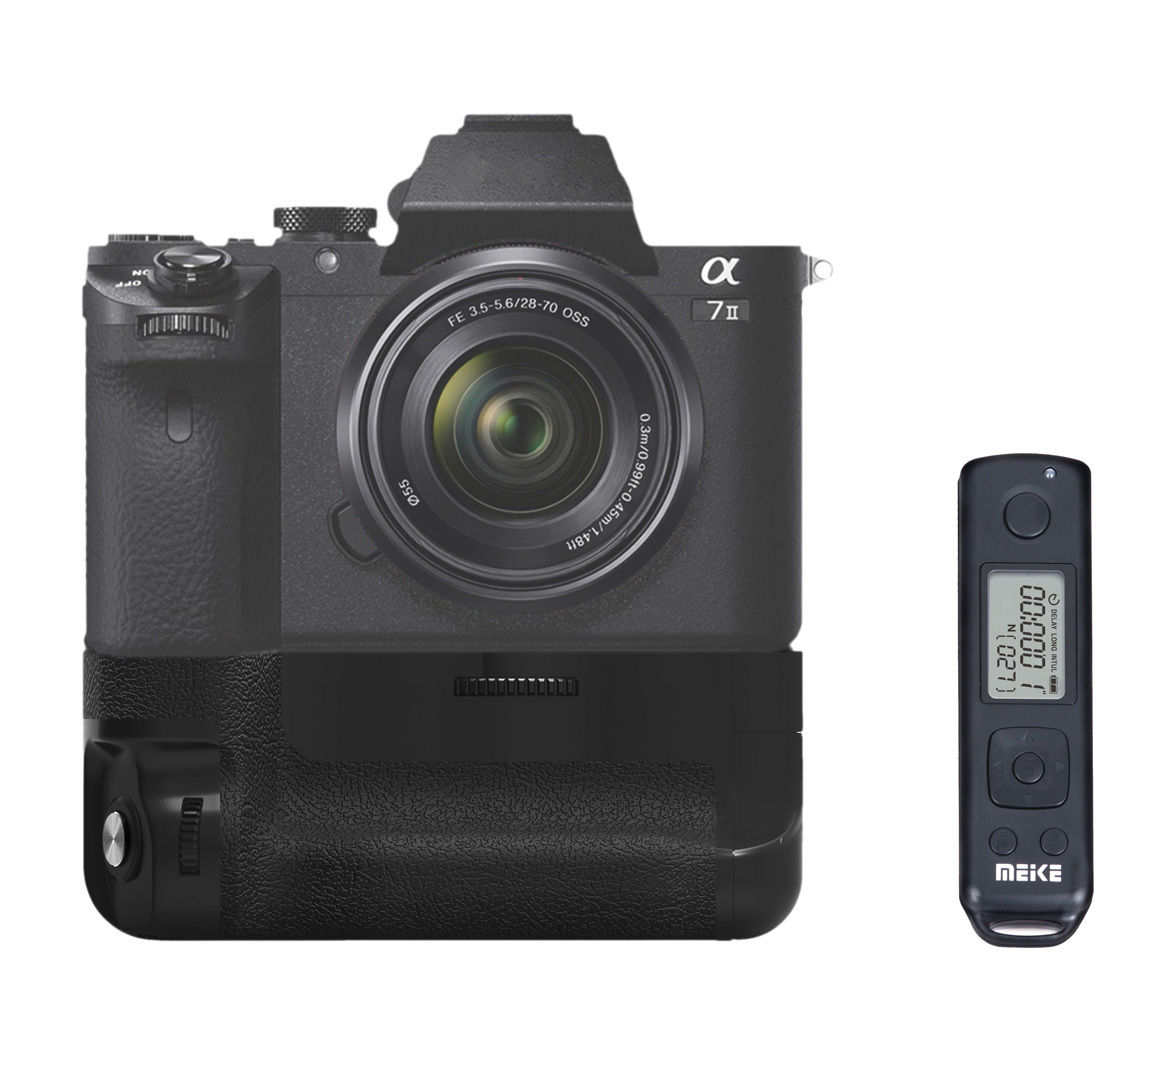 Meike MK-A7II Pro Built-in Wireless Control Battery Grip for Sony A7 II A7R II A7S II as for Sony VG-C2EM meike mk ar7 built in 2 4g wireless control battery grip for sony a7 a7r a7s